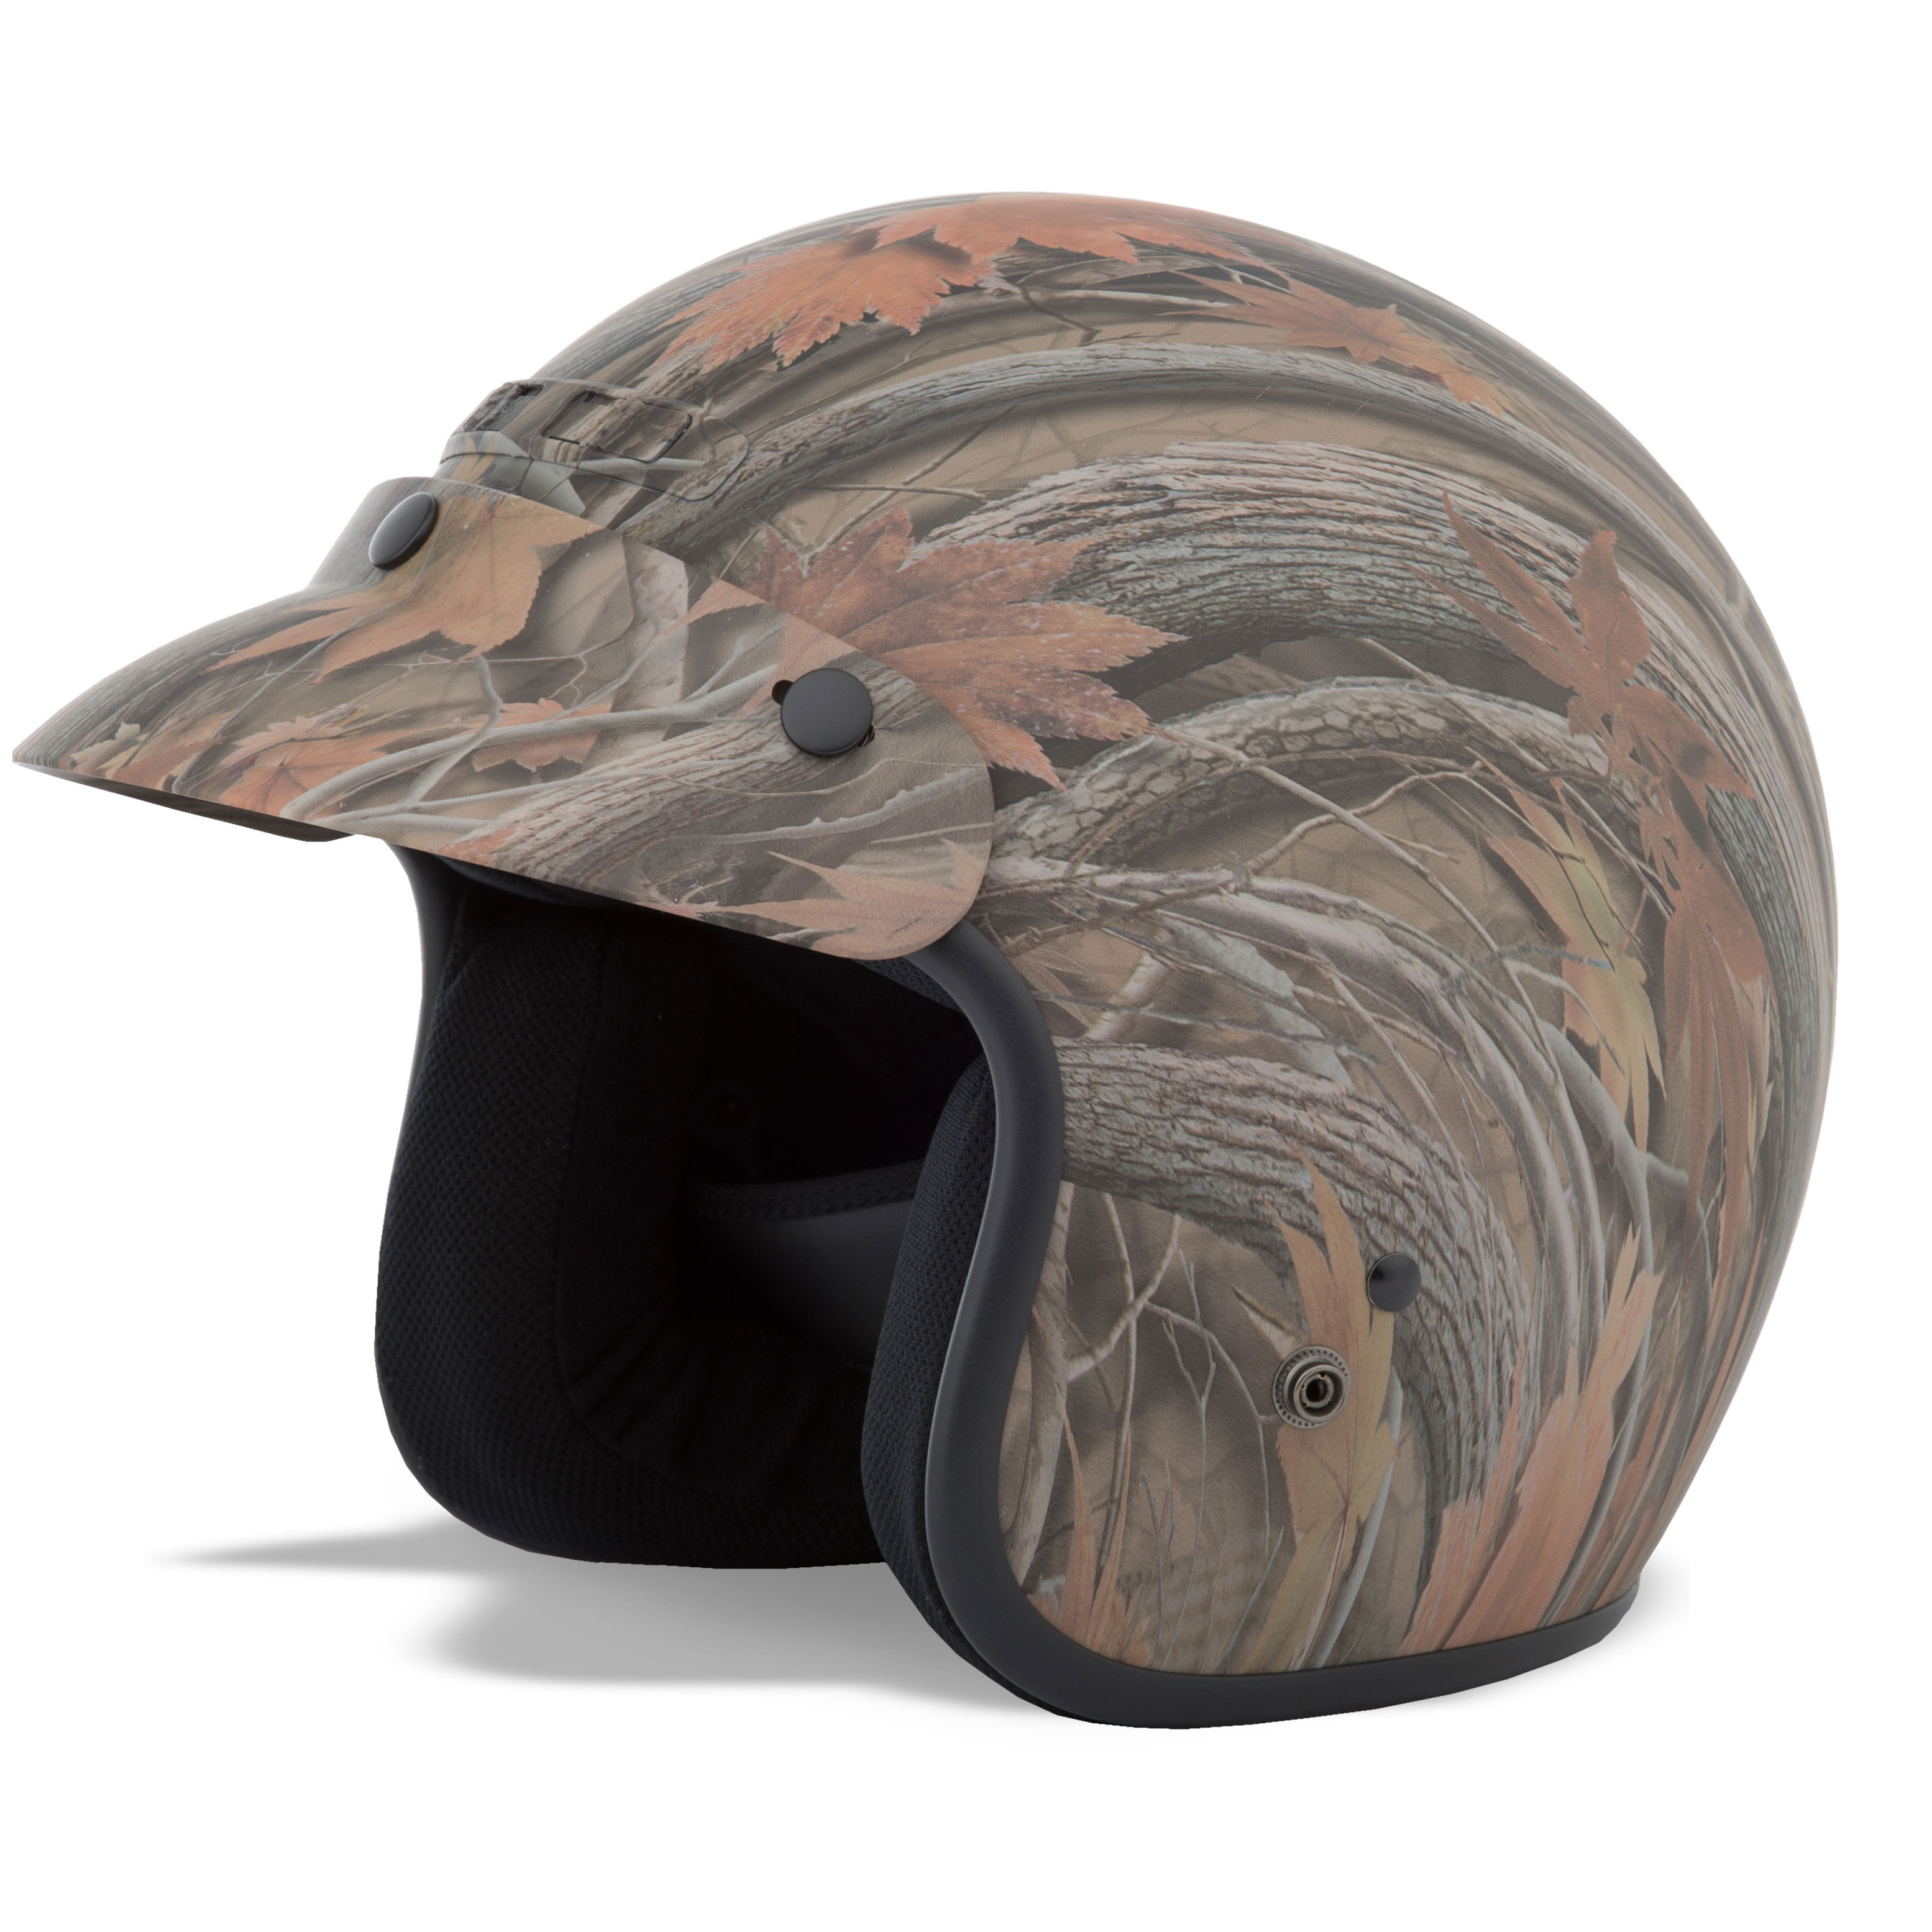 GMAX GM2 Leaf Camouflage Open Face Helmet